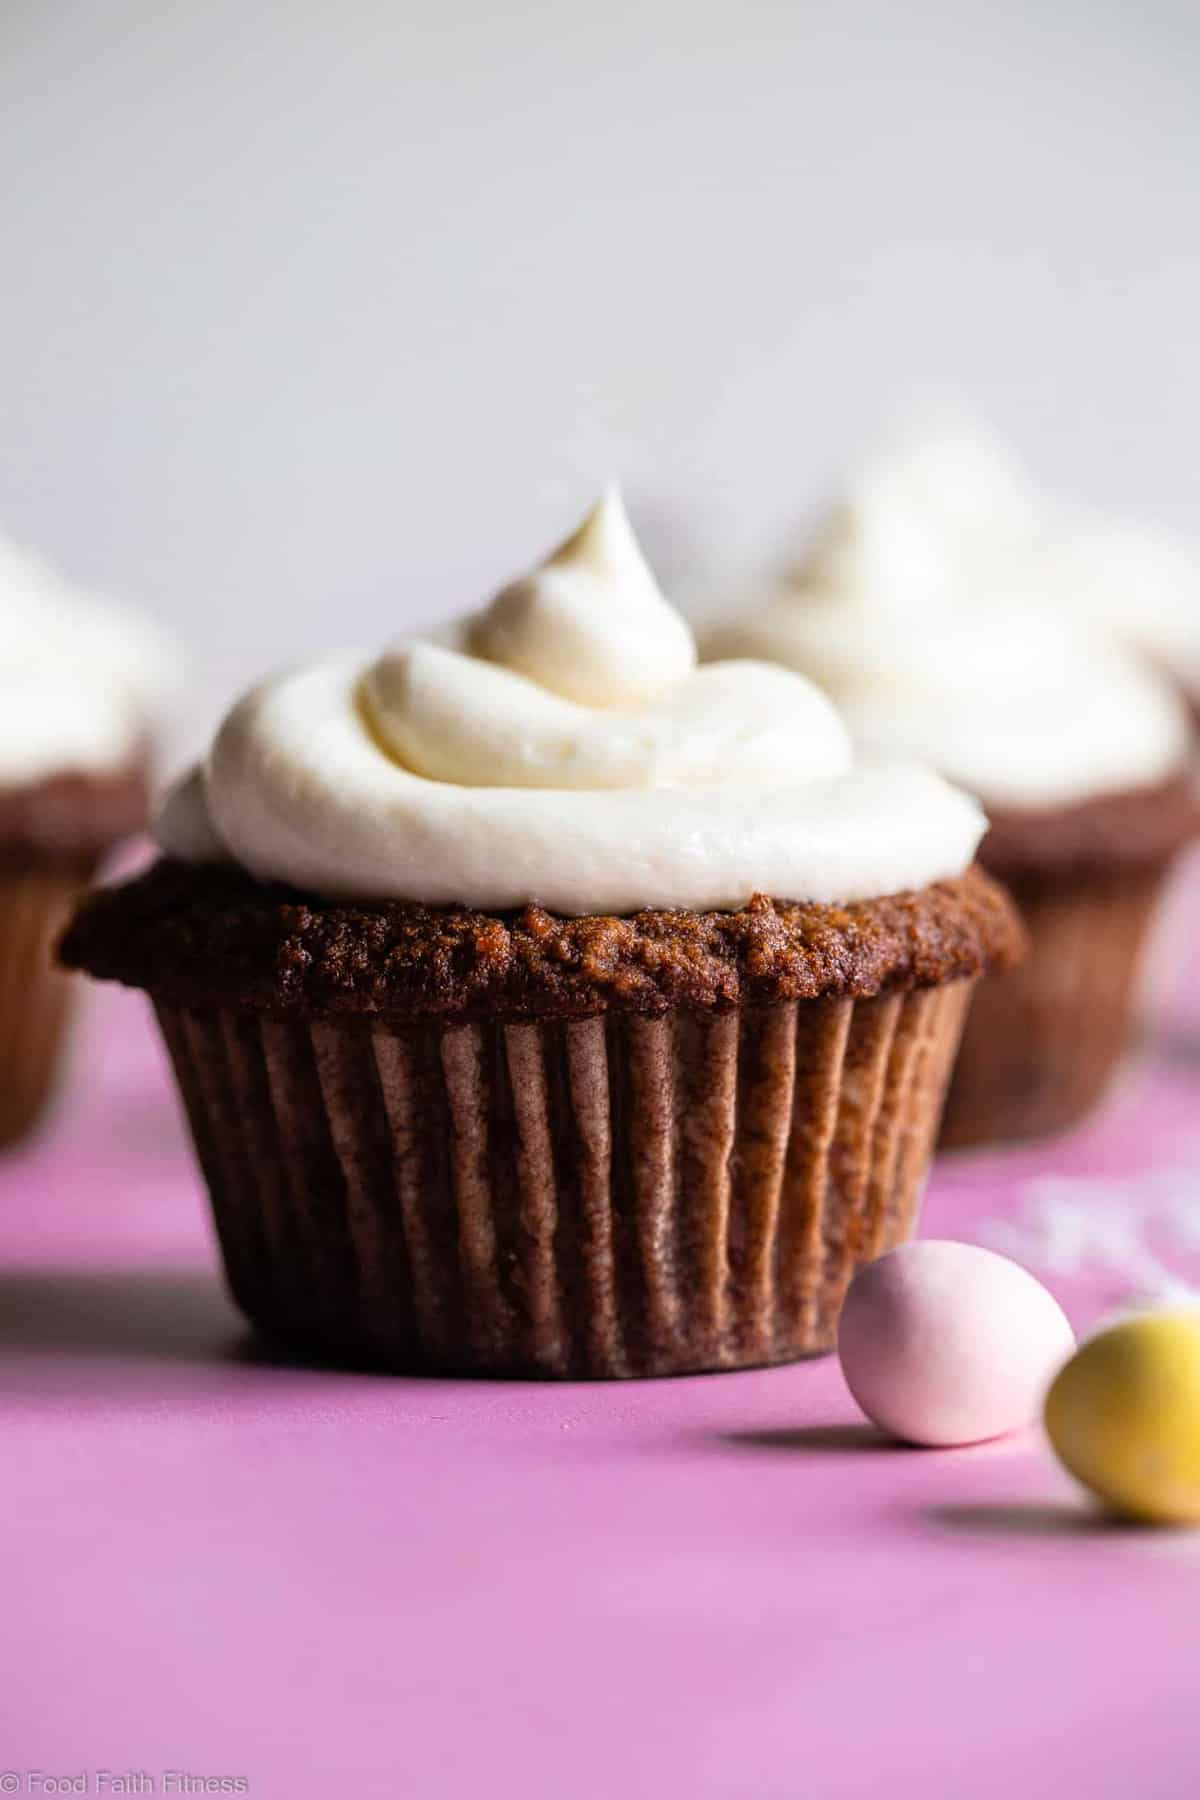 Gluten Free Carrot Cake Cupcakes - These Gluten Free Carrot Cake Cupcakes are tender, light, moist and perfectly spicy-sweet! No one will believe they are gluten free! Dairy free option included! | #Foodfaithfitness |